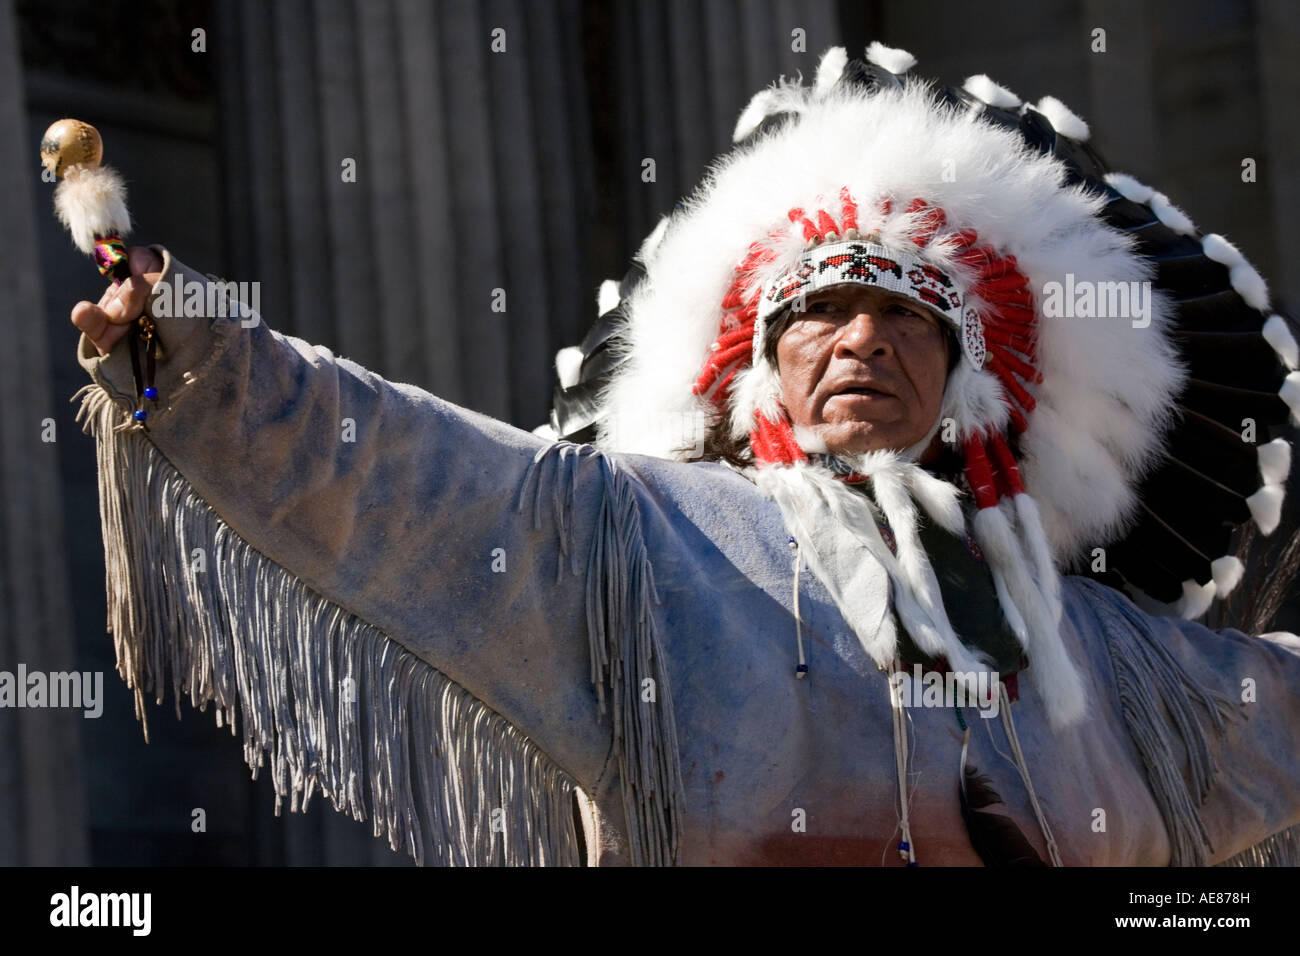 American Indian Chief at the Edinburgh festival fringe Princes Street, Scotland. - Stock Image